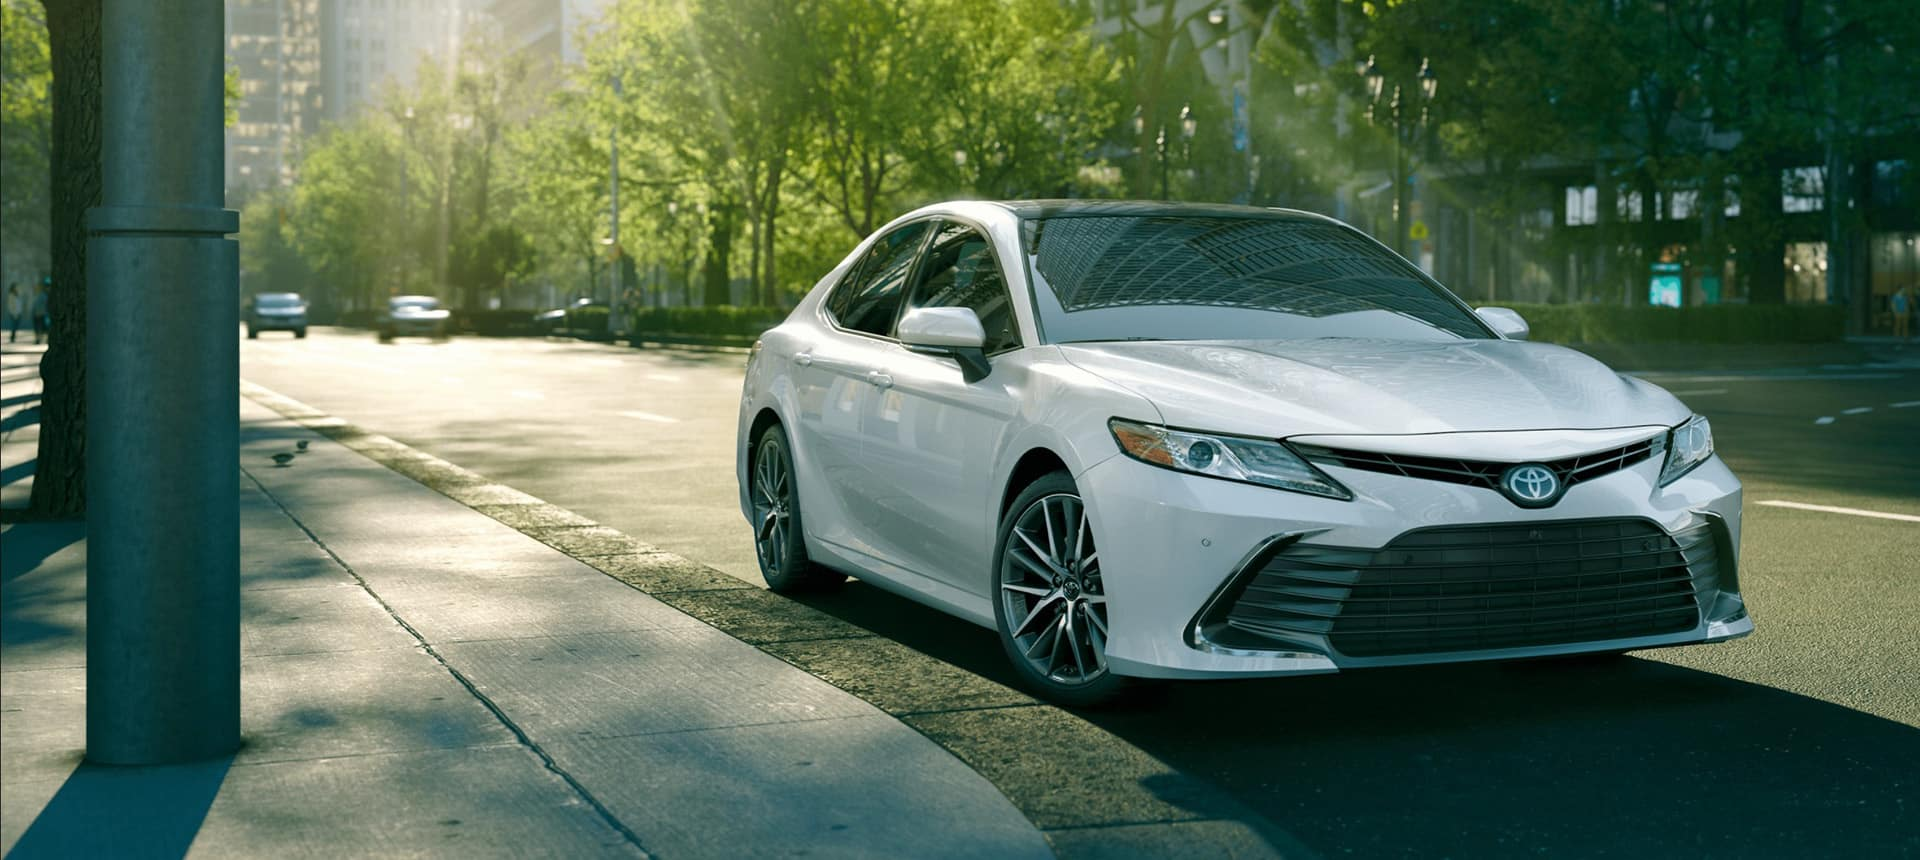 2021 Toyota Camry Hybrid in St. Louis